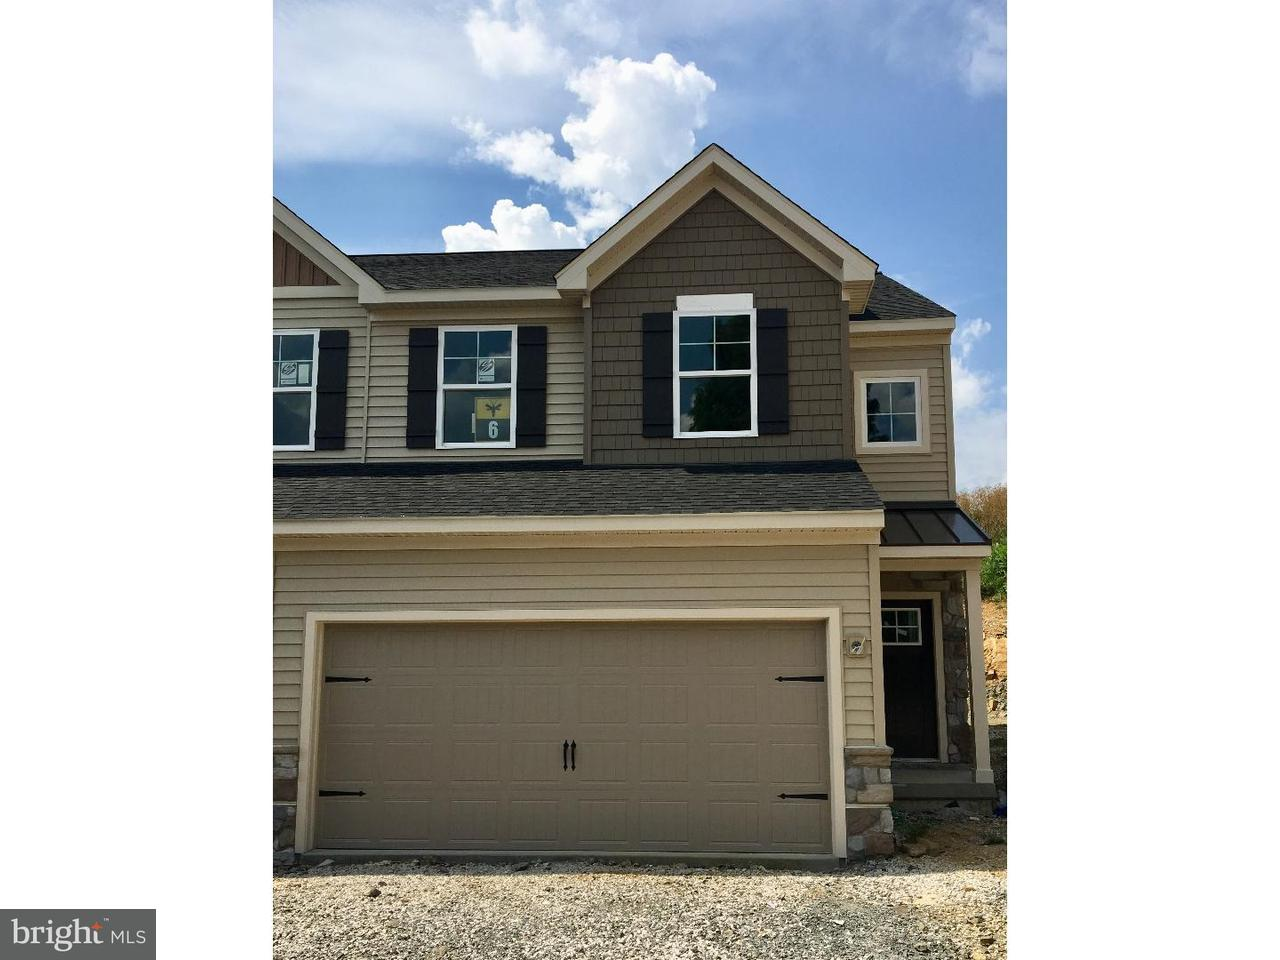 Townhouse for Sale at 44 WEXFORD CT #6 Morgantown, Pennsylvania 19543 United States